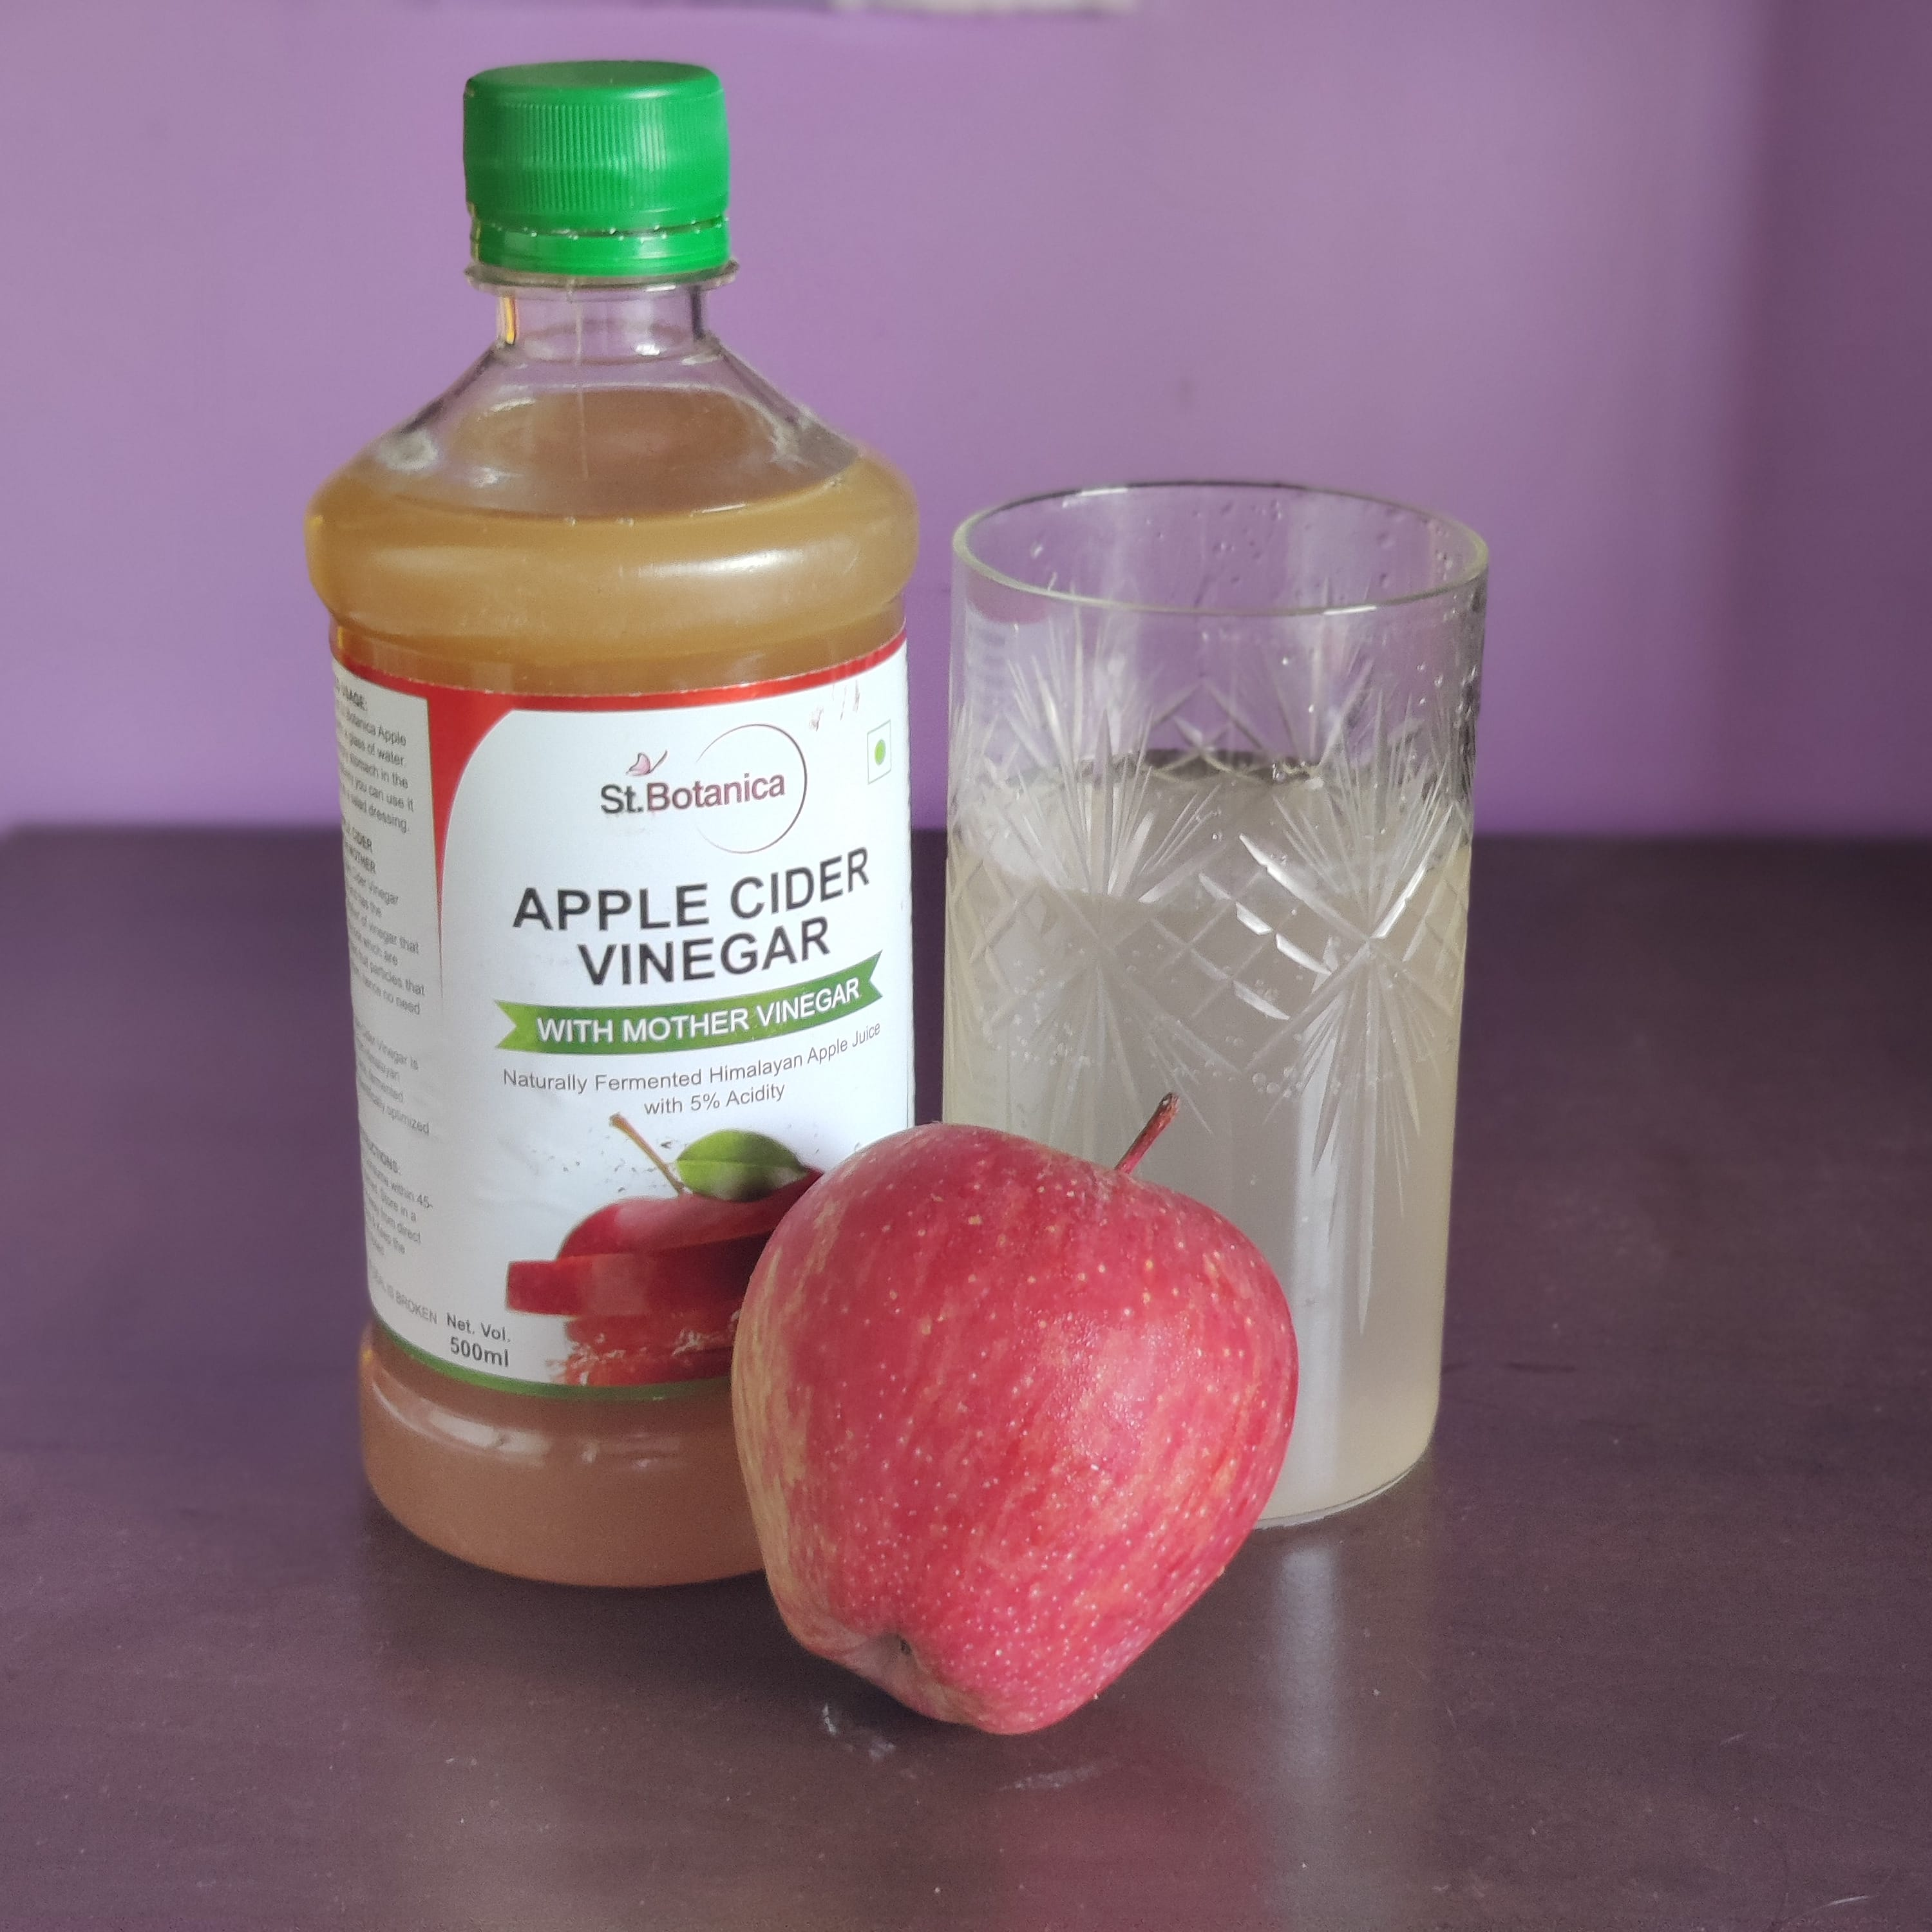 St Botanica Apple Cider Vinegar -A great Antioxidant-By nikichoudhury